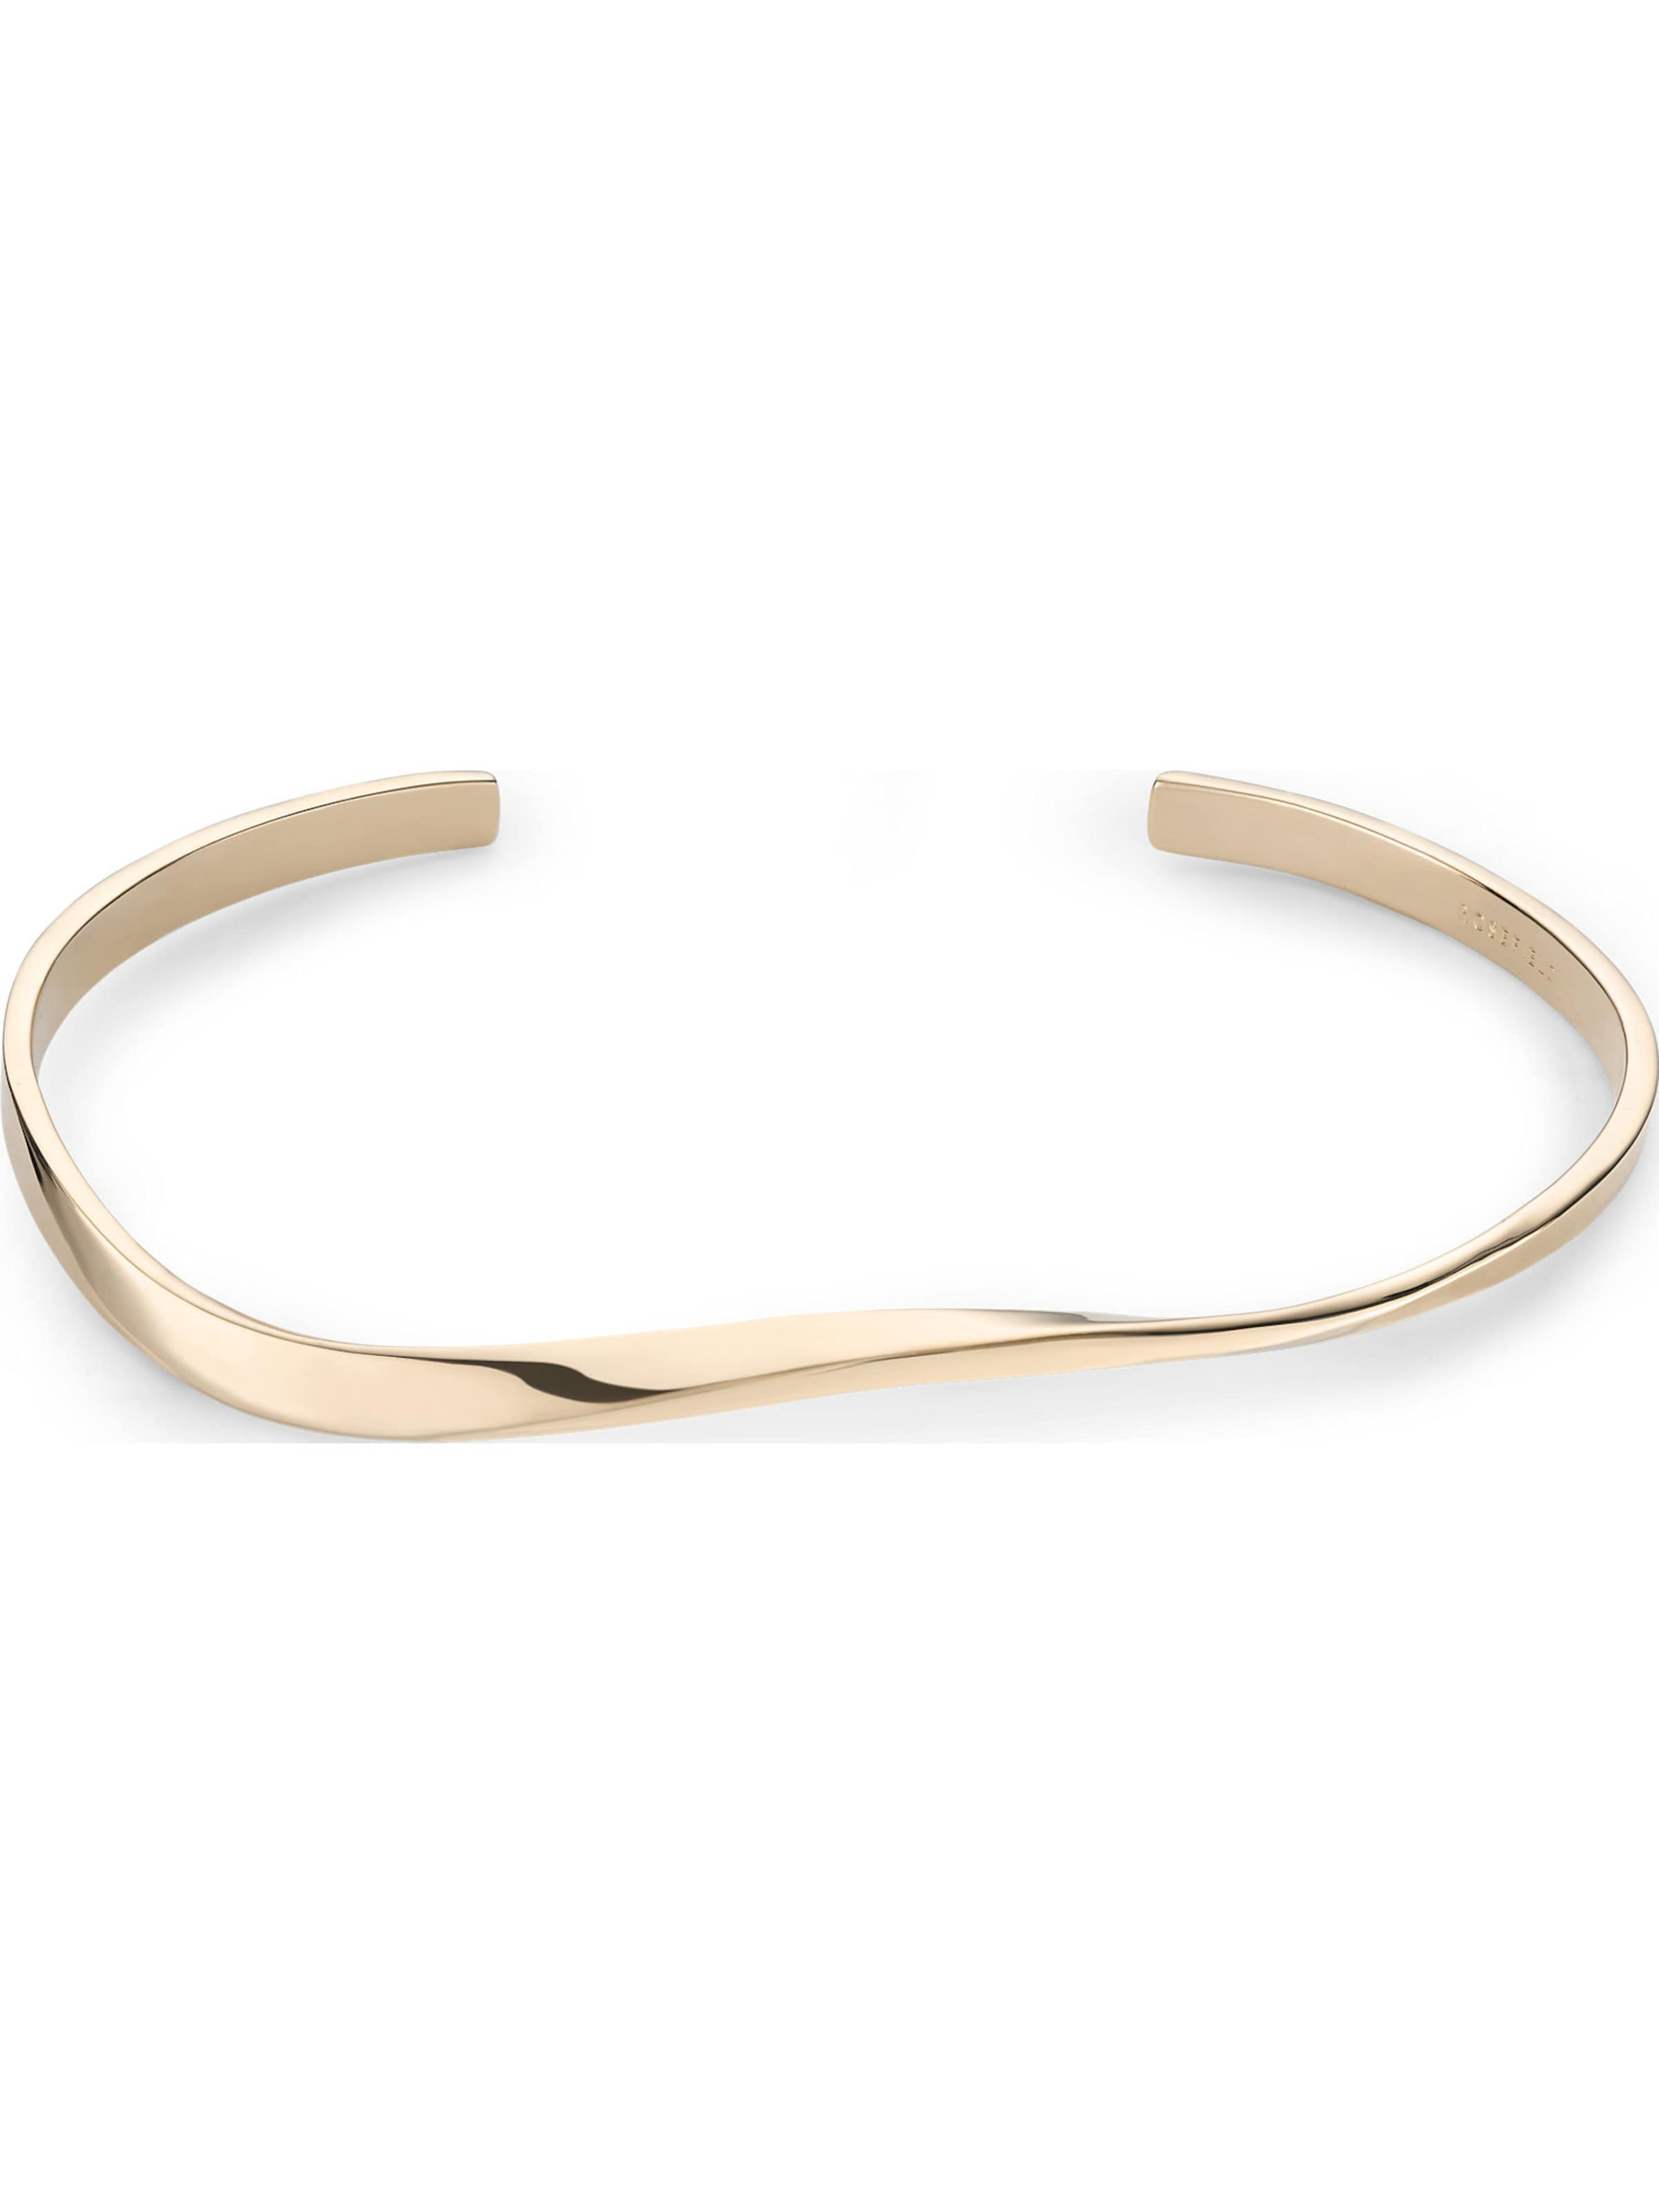 Gold In In Armband Gold Armband Rosefield Rosefield In Armband Rosefield 5ARjL34